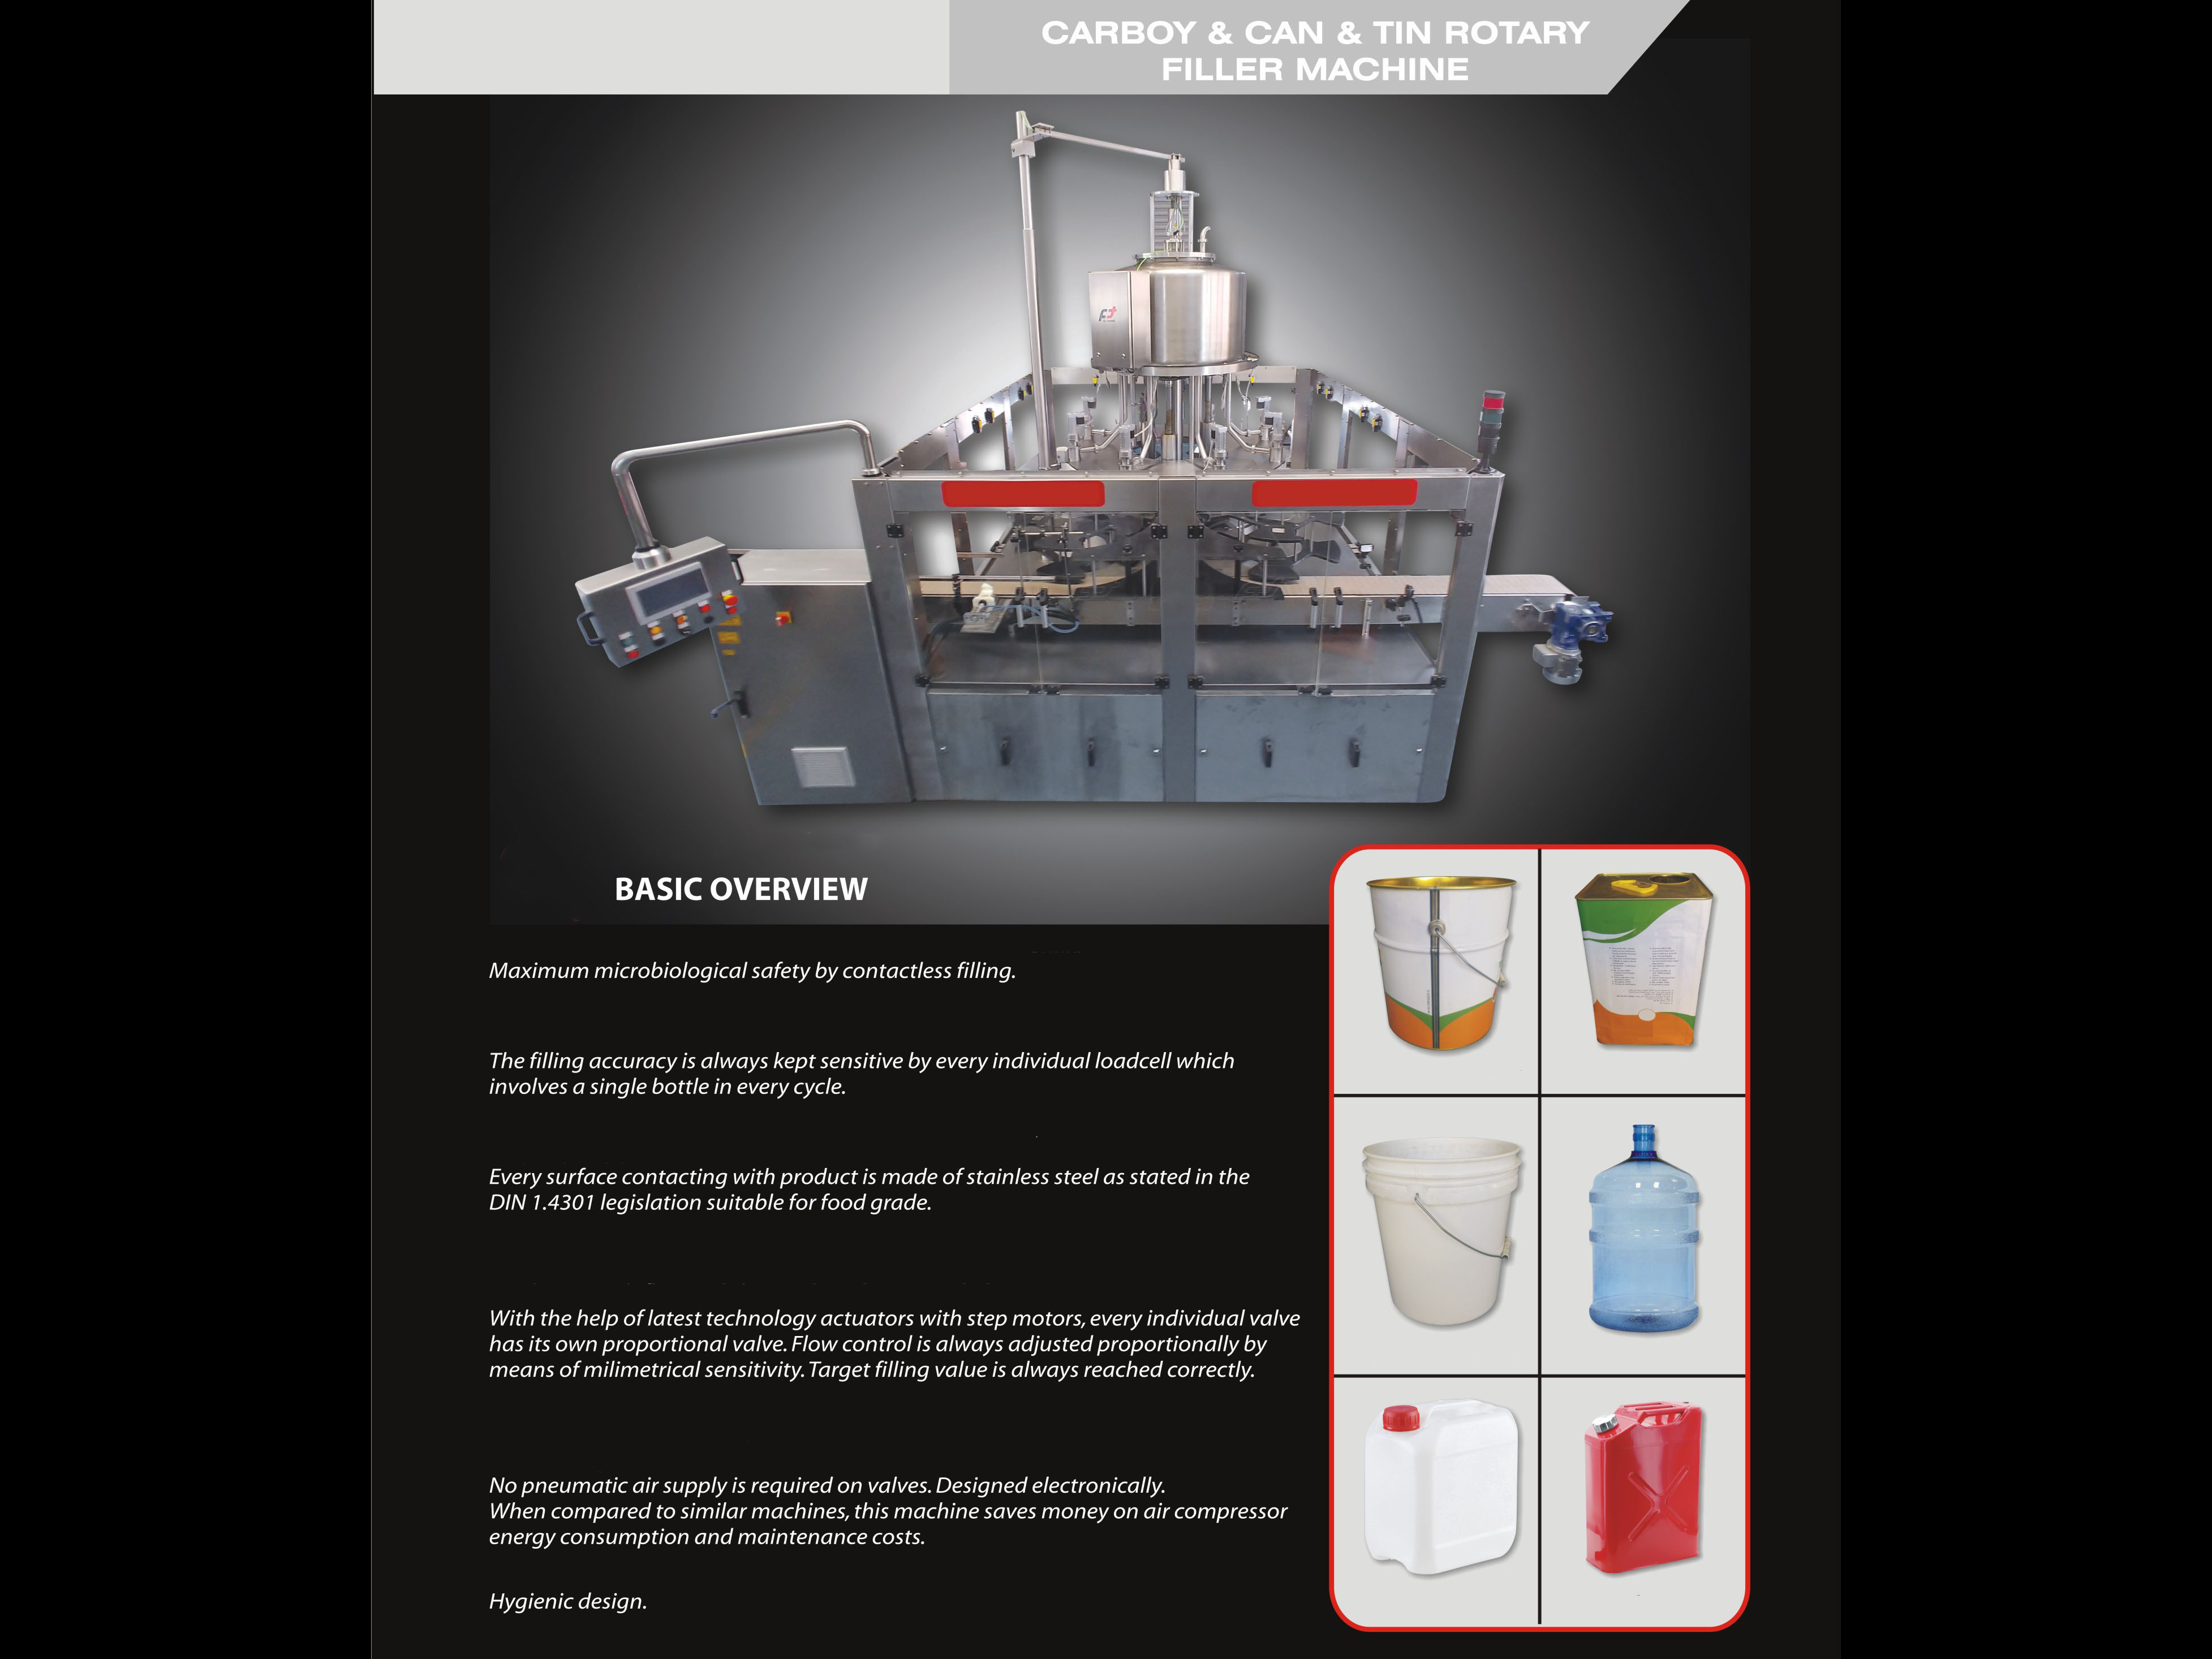 New Filling Machine CANS & TINS Filler 8.1 - 4